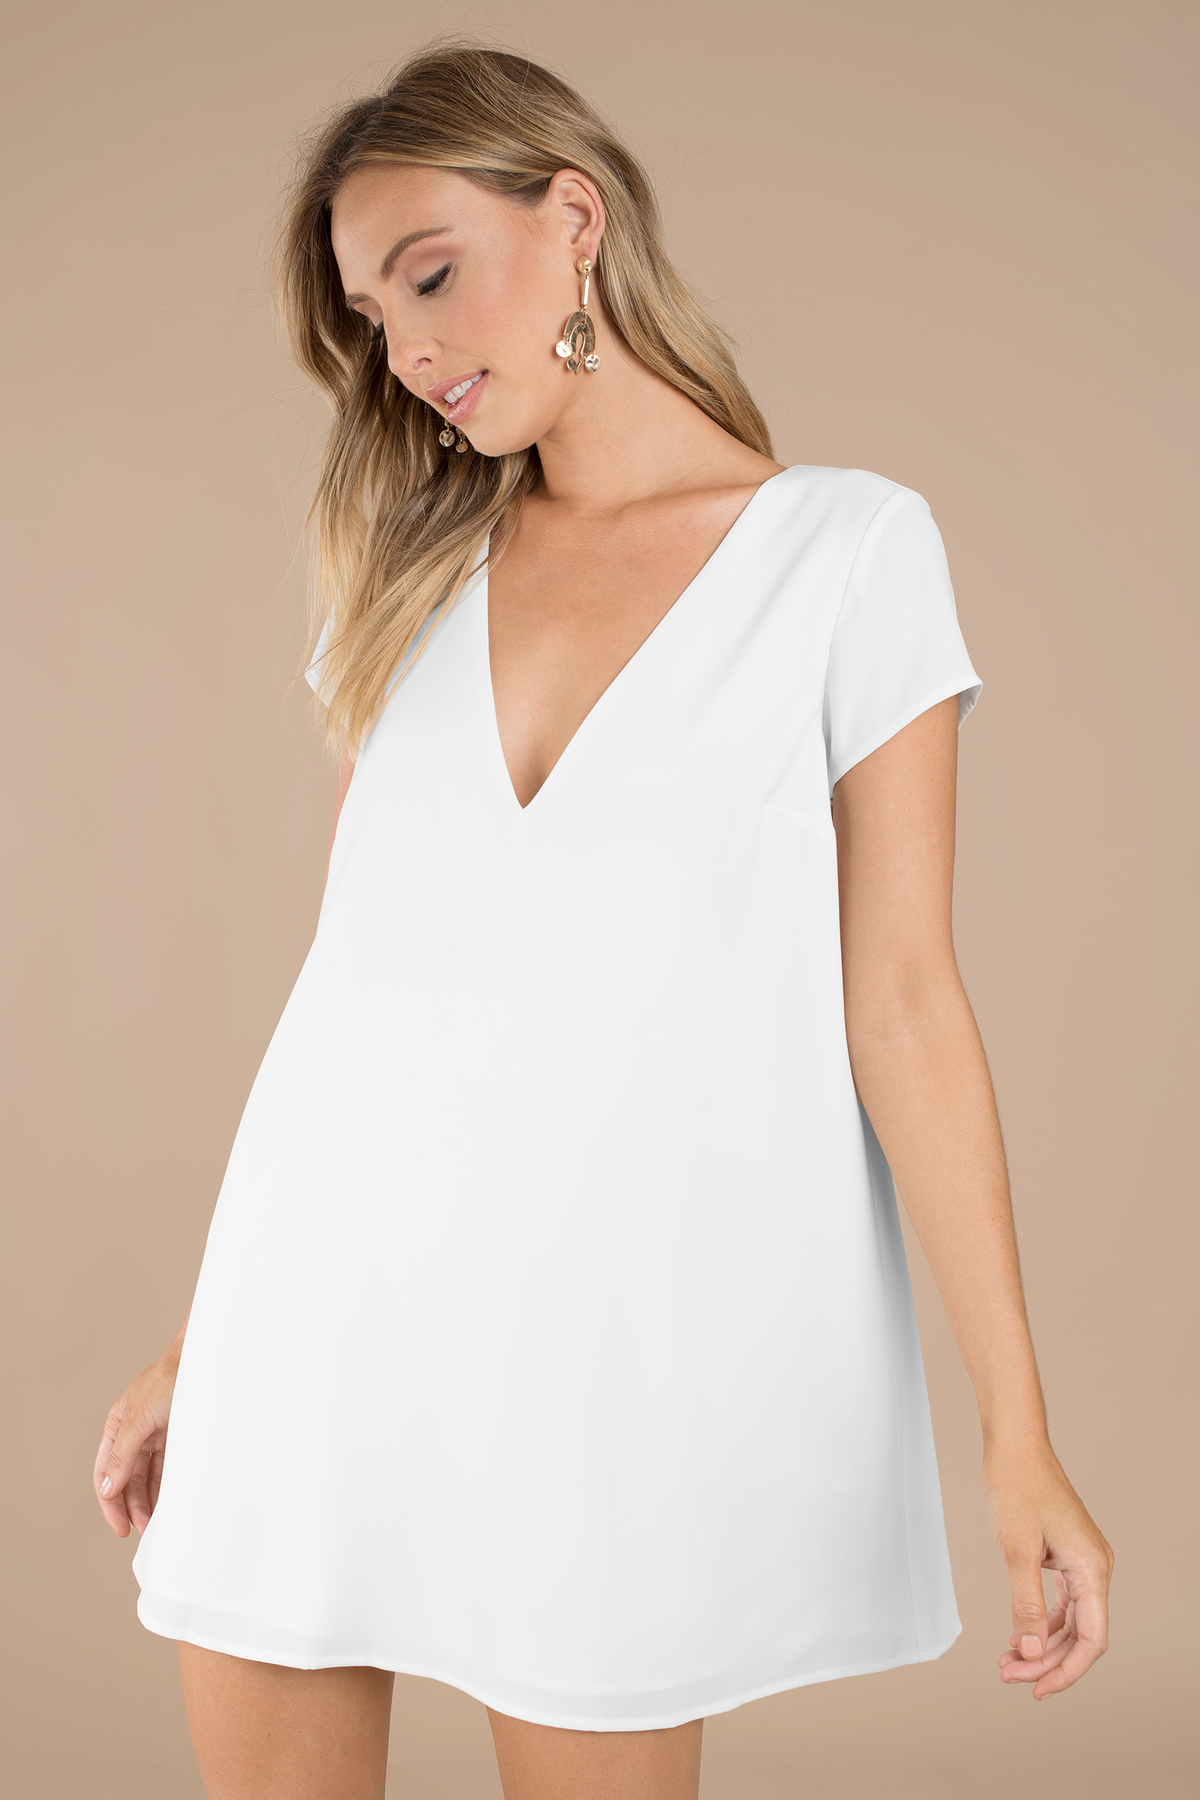 Wedding Ivory Dress ivory shift dress above the knee 62 00 swoop in dress